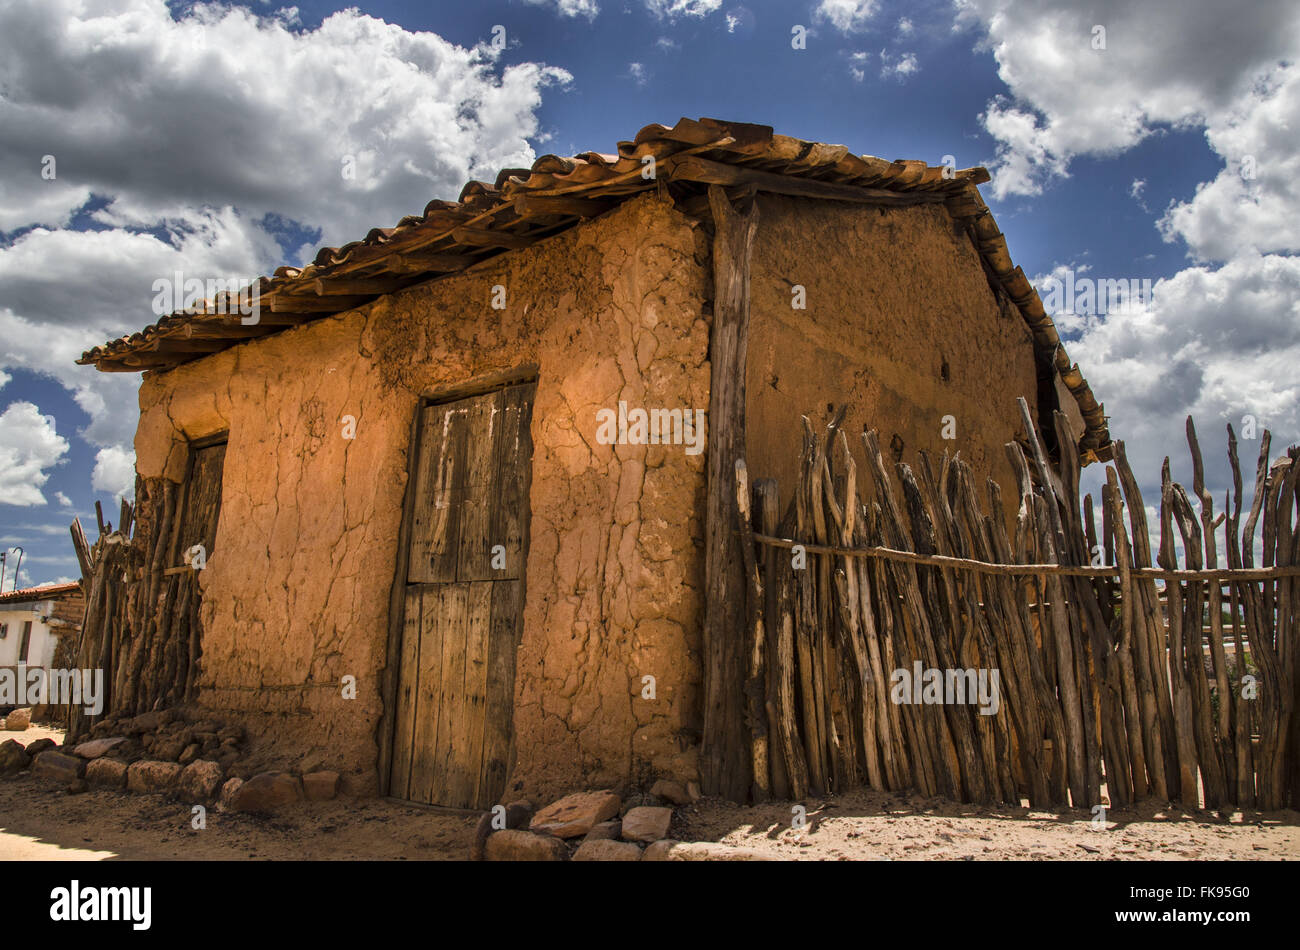 Adobe house in the northeastern backlands - Stock Image